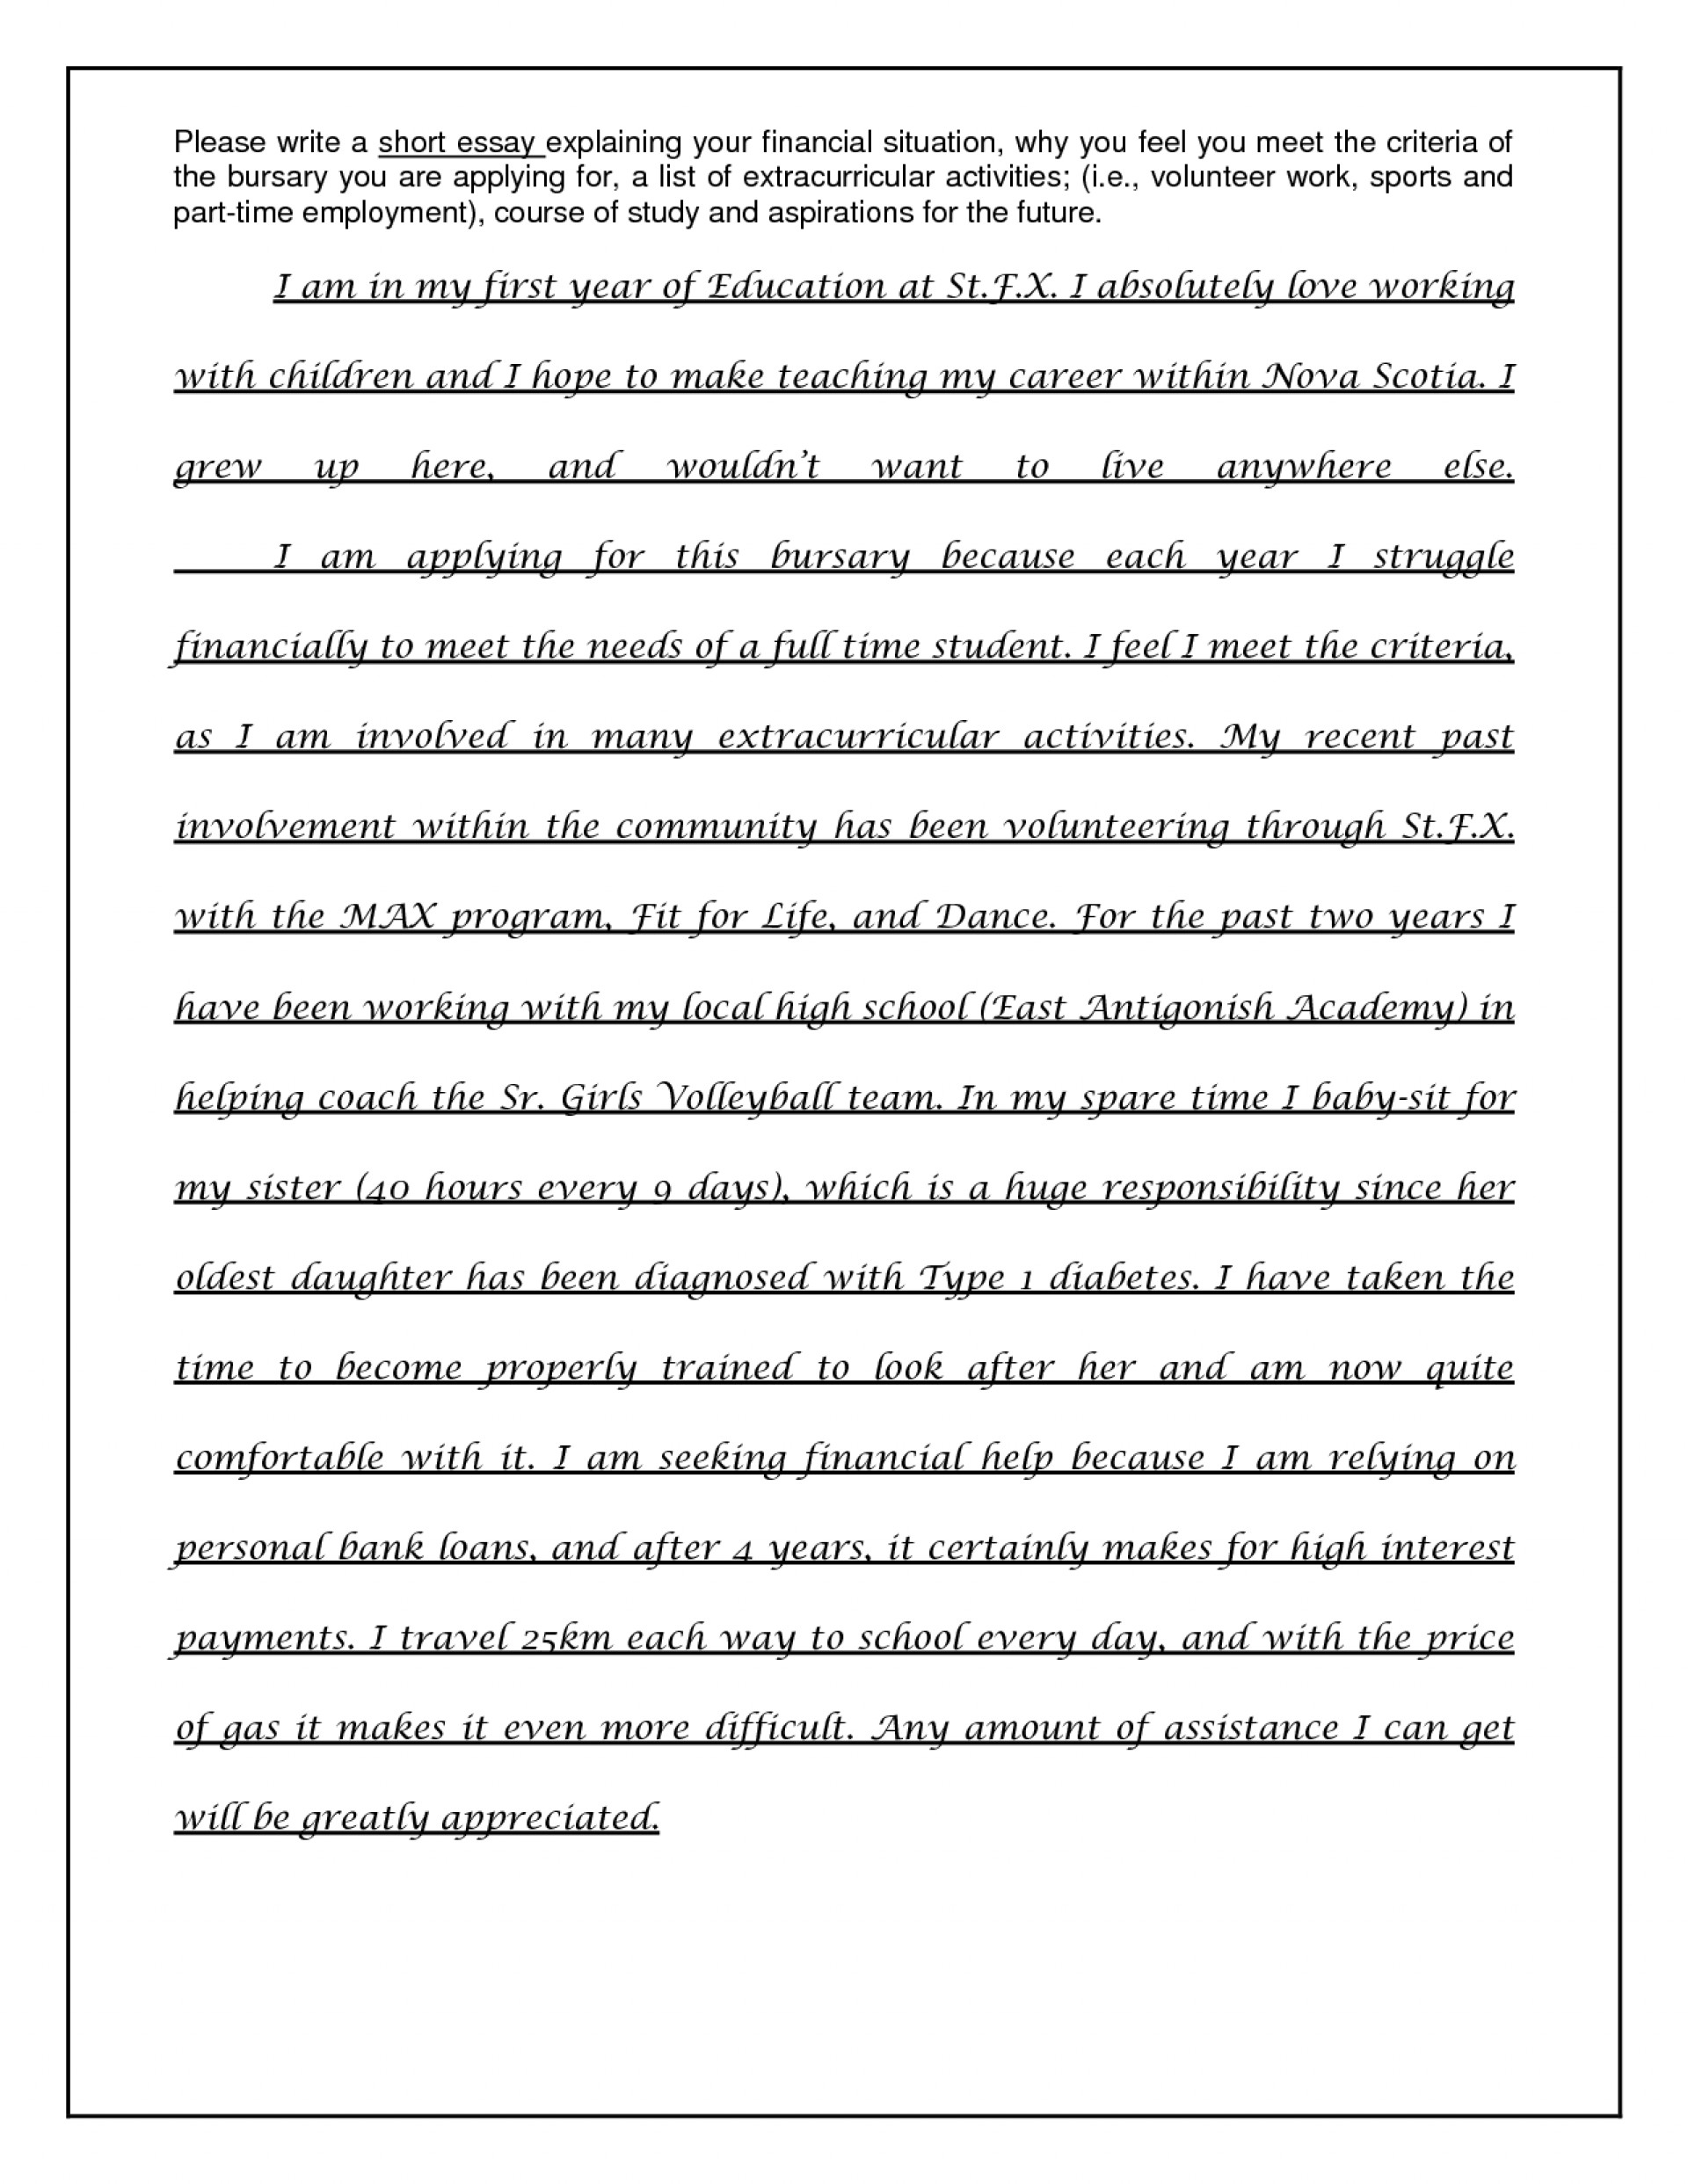 014 How To Start Scholarship Essay Financial Need Sample Scholarshipss For Students Write Essa College Based Striking A About Yourself Examples Off 1920